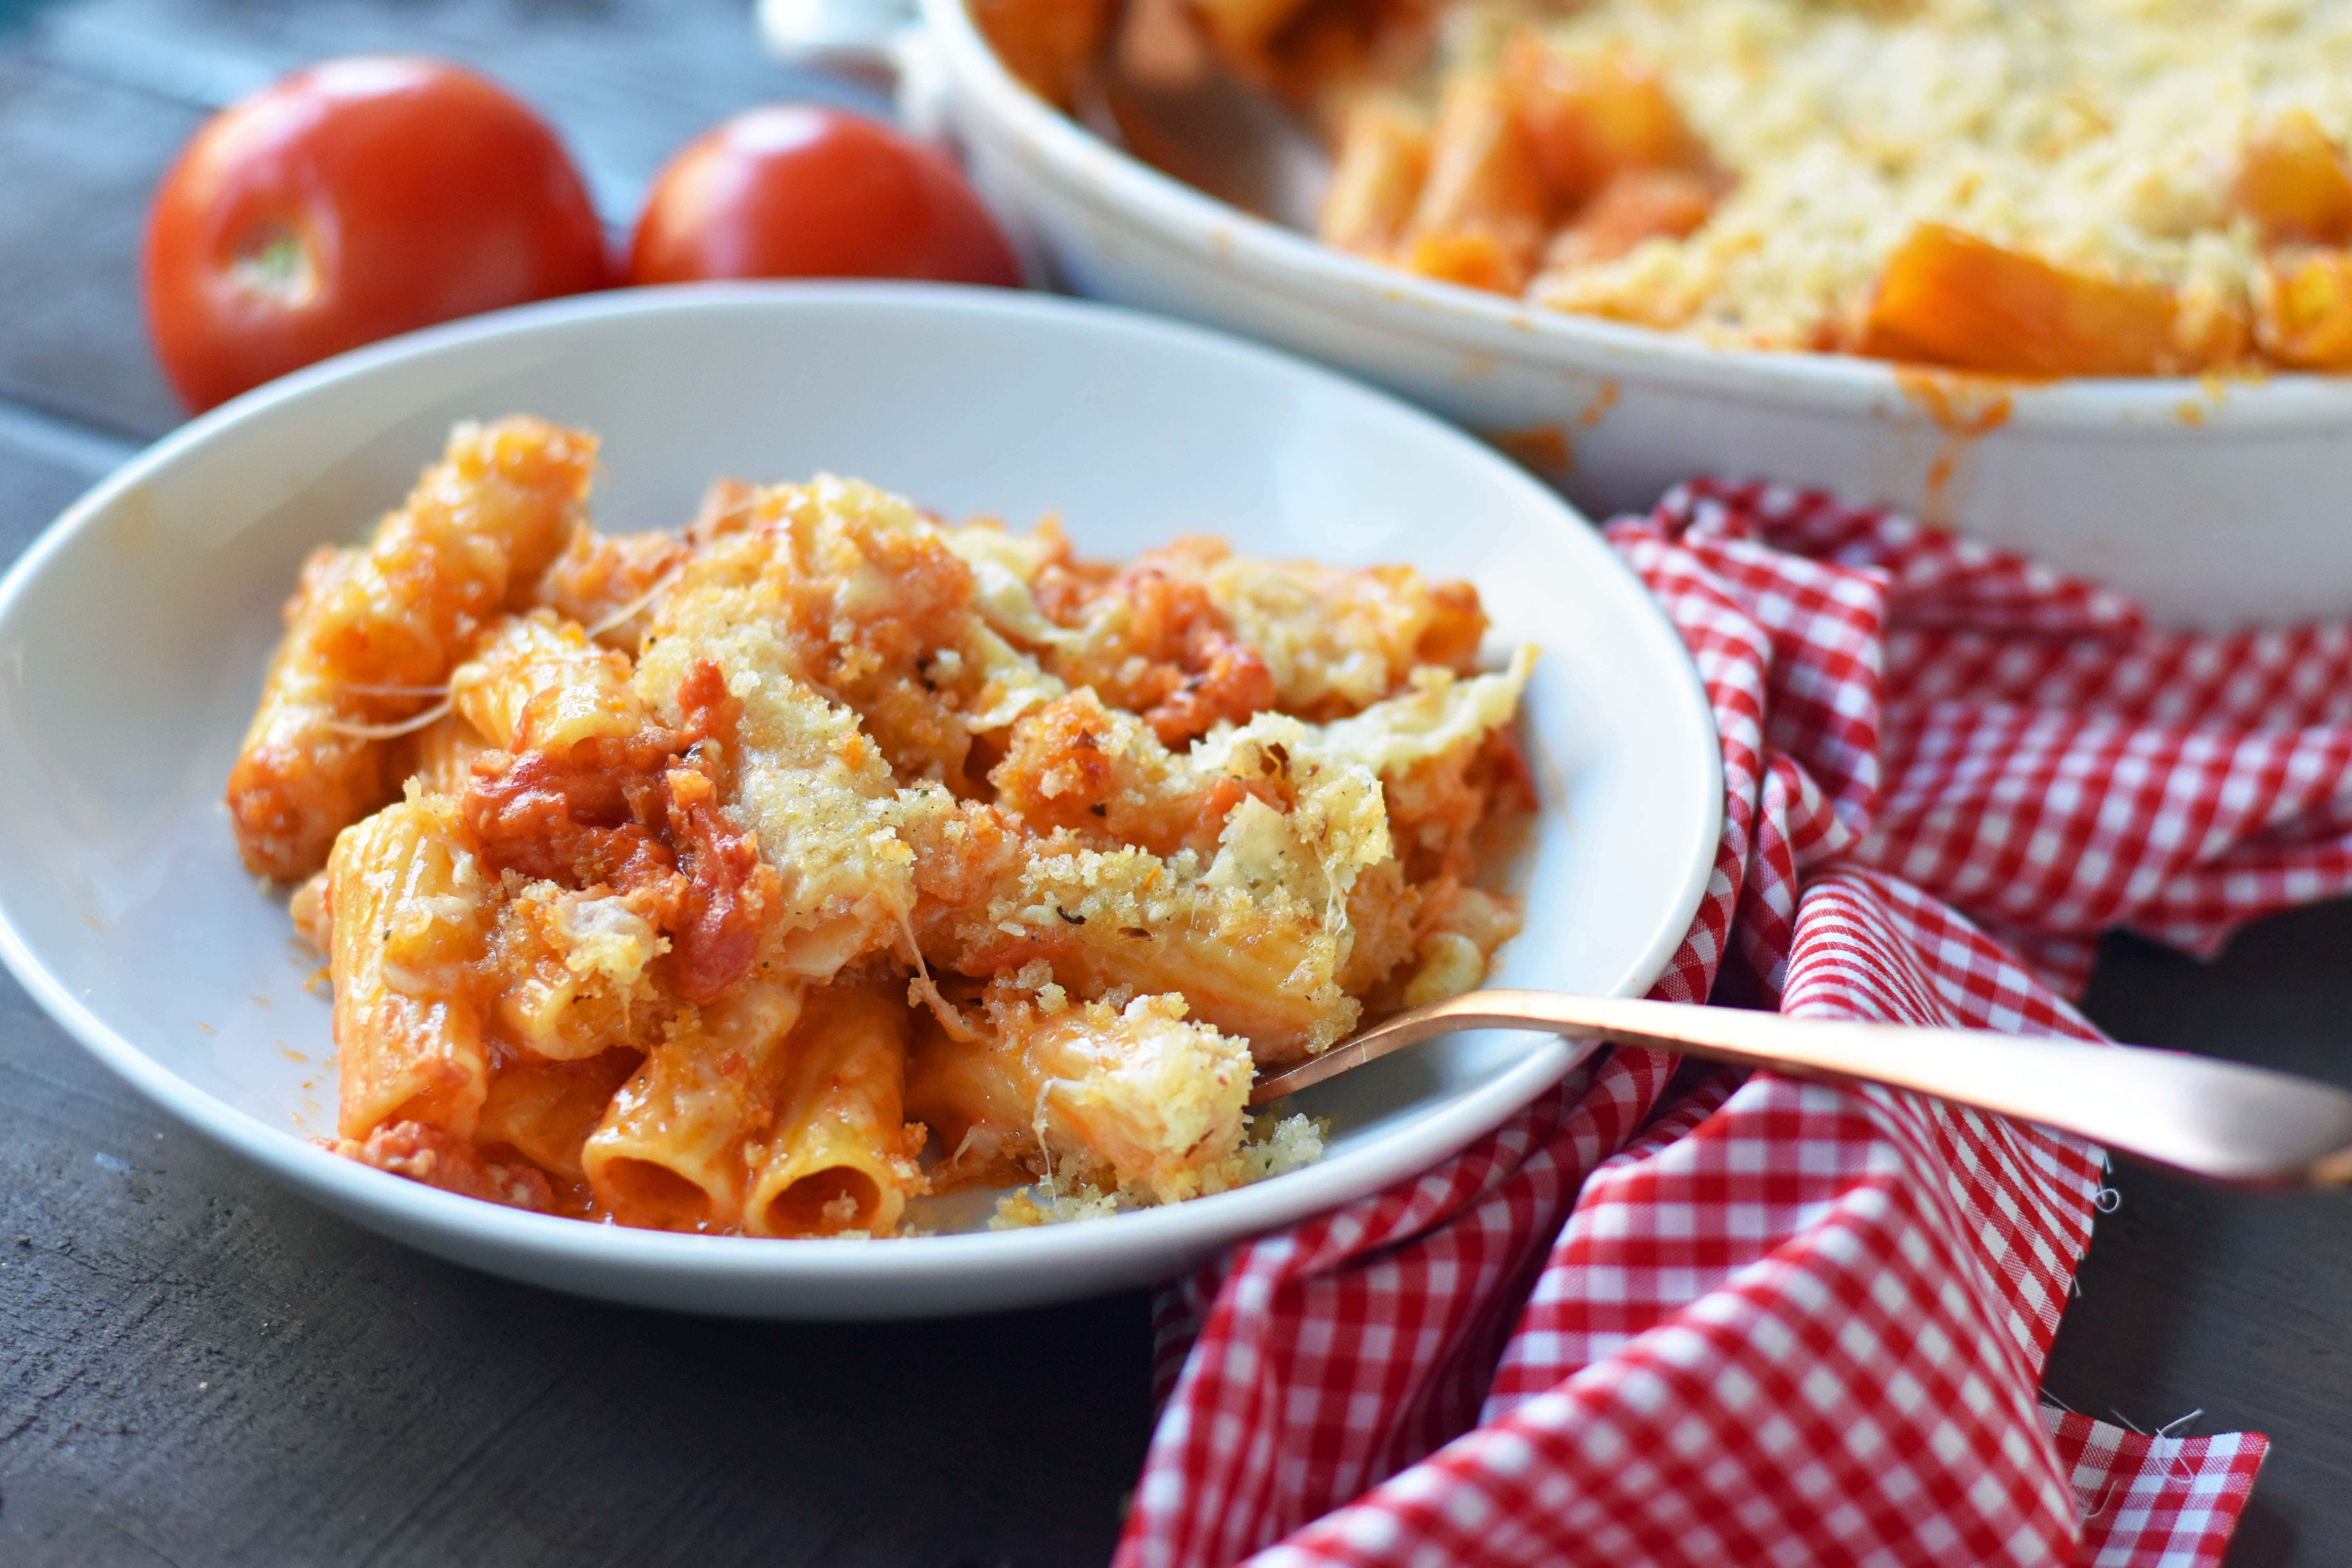 Cheesy Baked Rigatoni. An easy, popular Italian pasta dish. Baked rigatoni or baked ziti with rich and creamy bechamel sauce and homemade marinara sauce topped with parmesan and mozzarella cheeses and with olive oil crunchy topping. A family favorite weeknight pasta dish made in 30 minutes. www.modernhoney.com